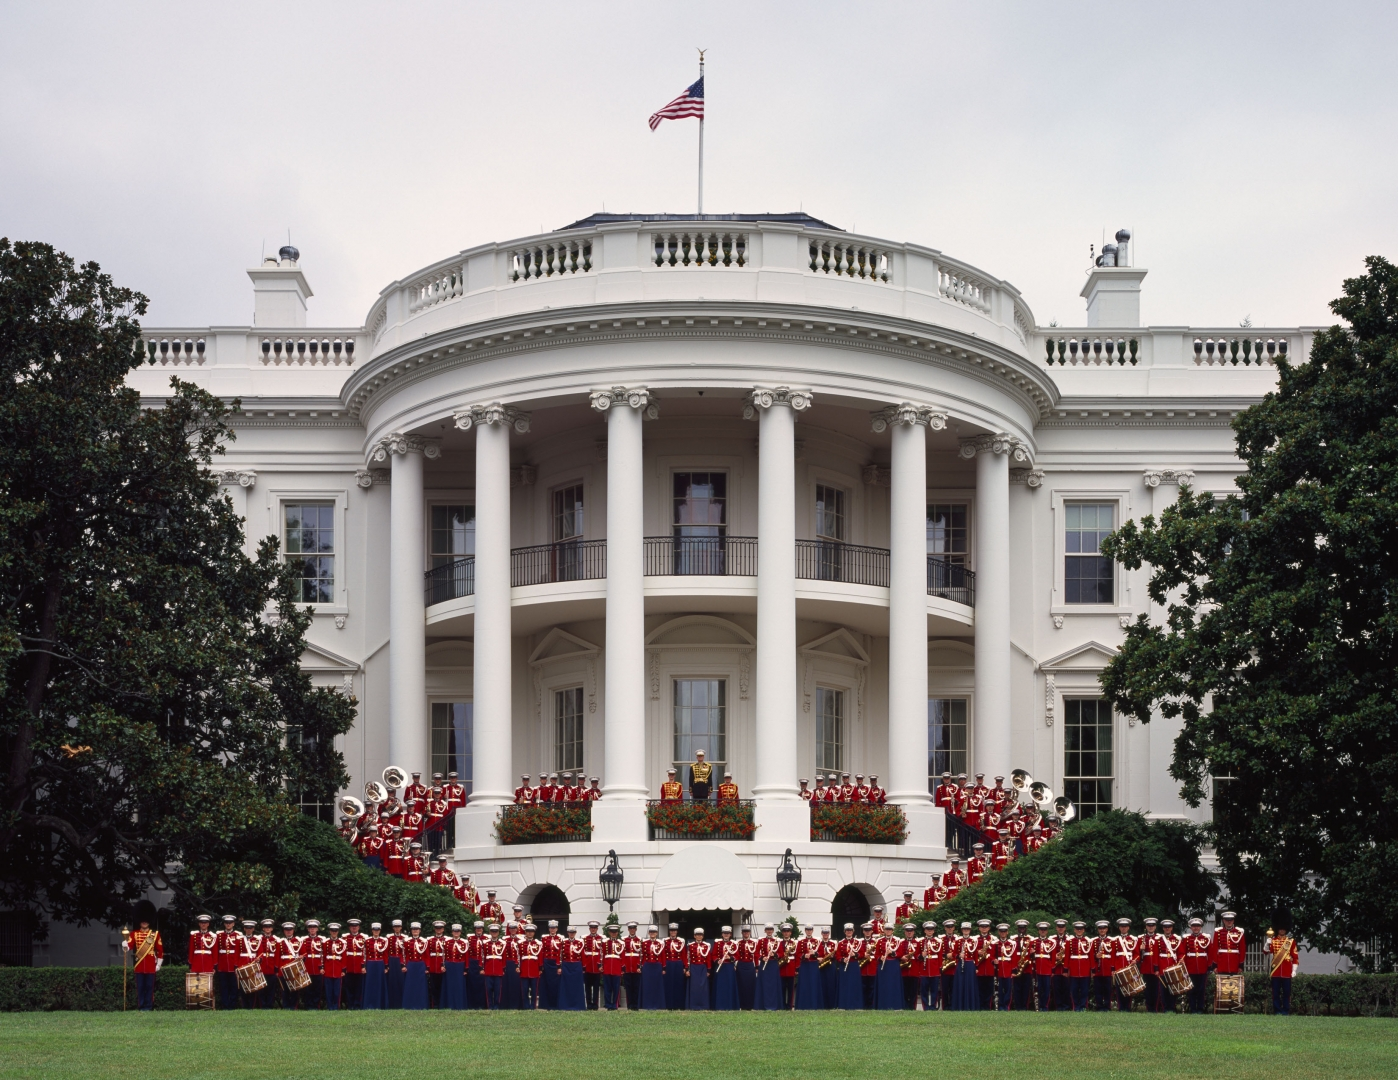 Pictures of the new white house Porn photos, Porn pictures, Sex photos, Mobile porn, XXX